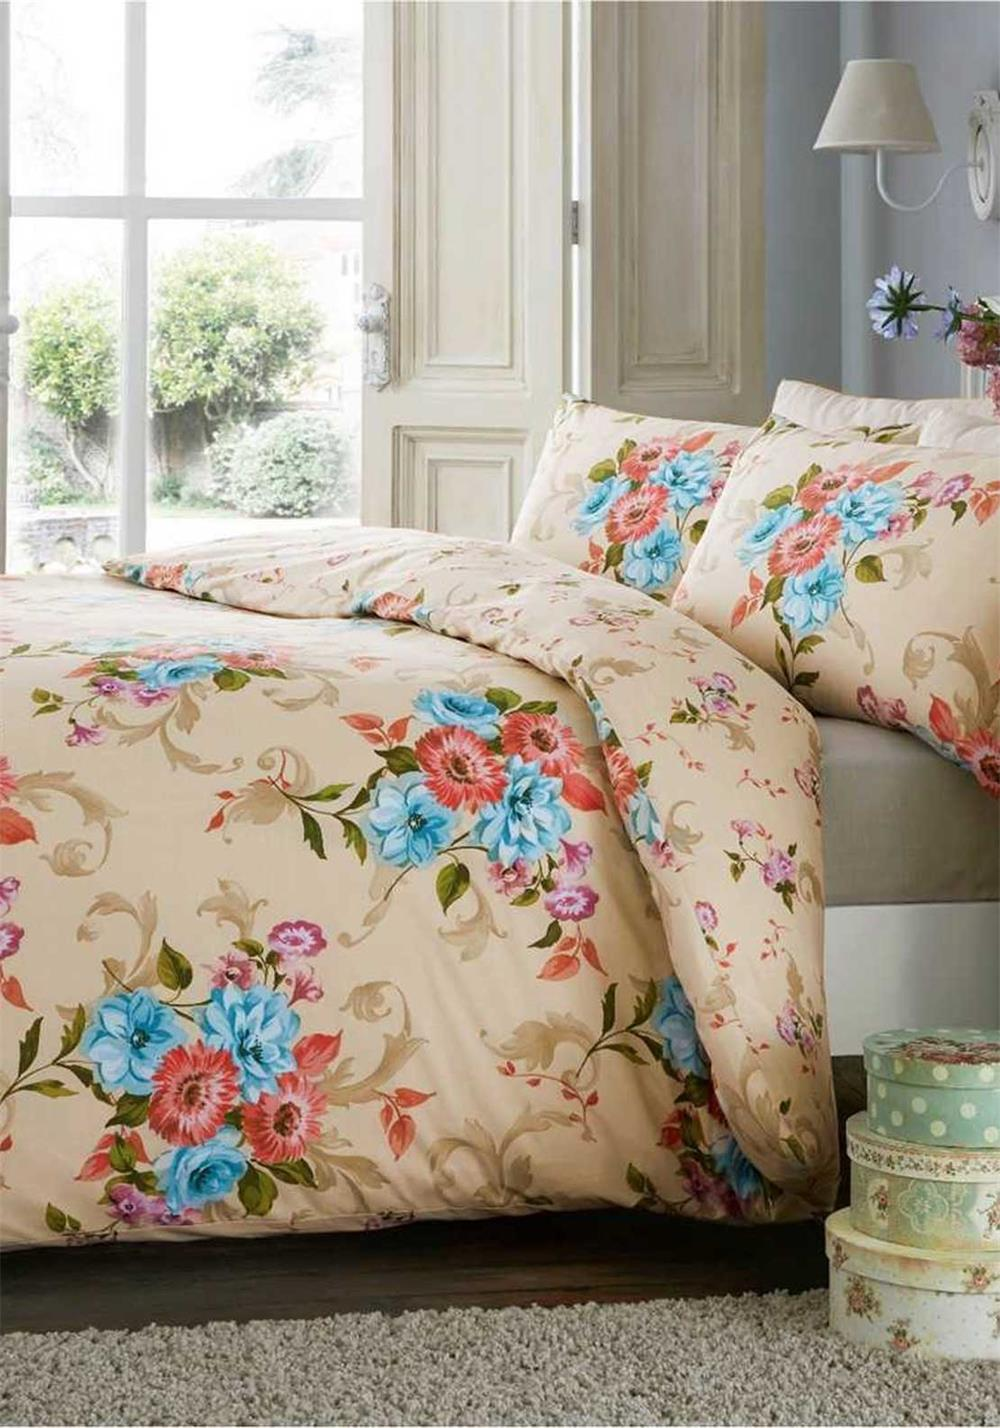 De Cama Ella Floral Print Duvet Cover Set, Multi-Coloured